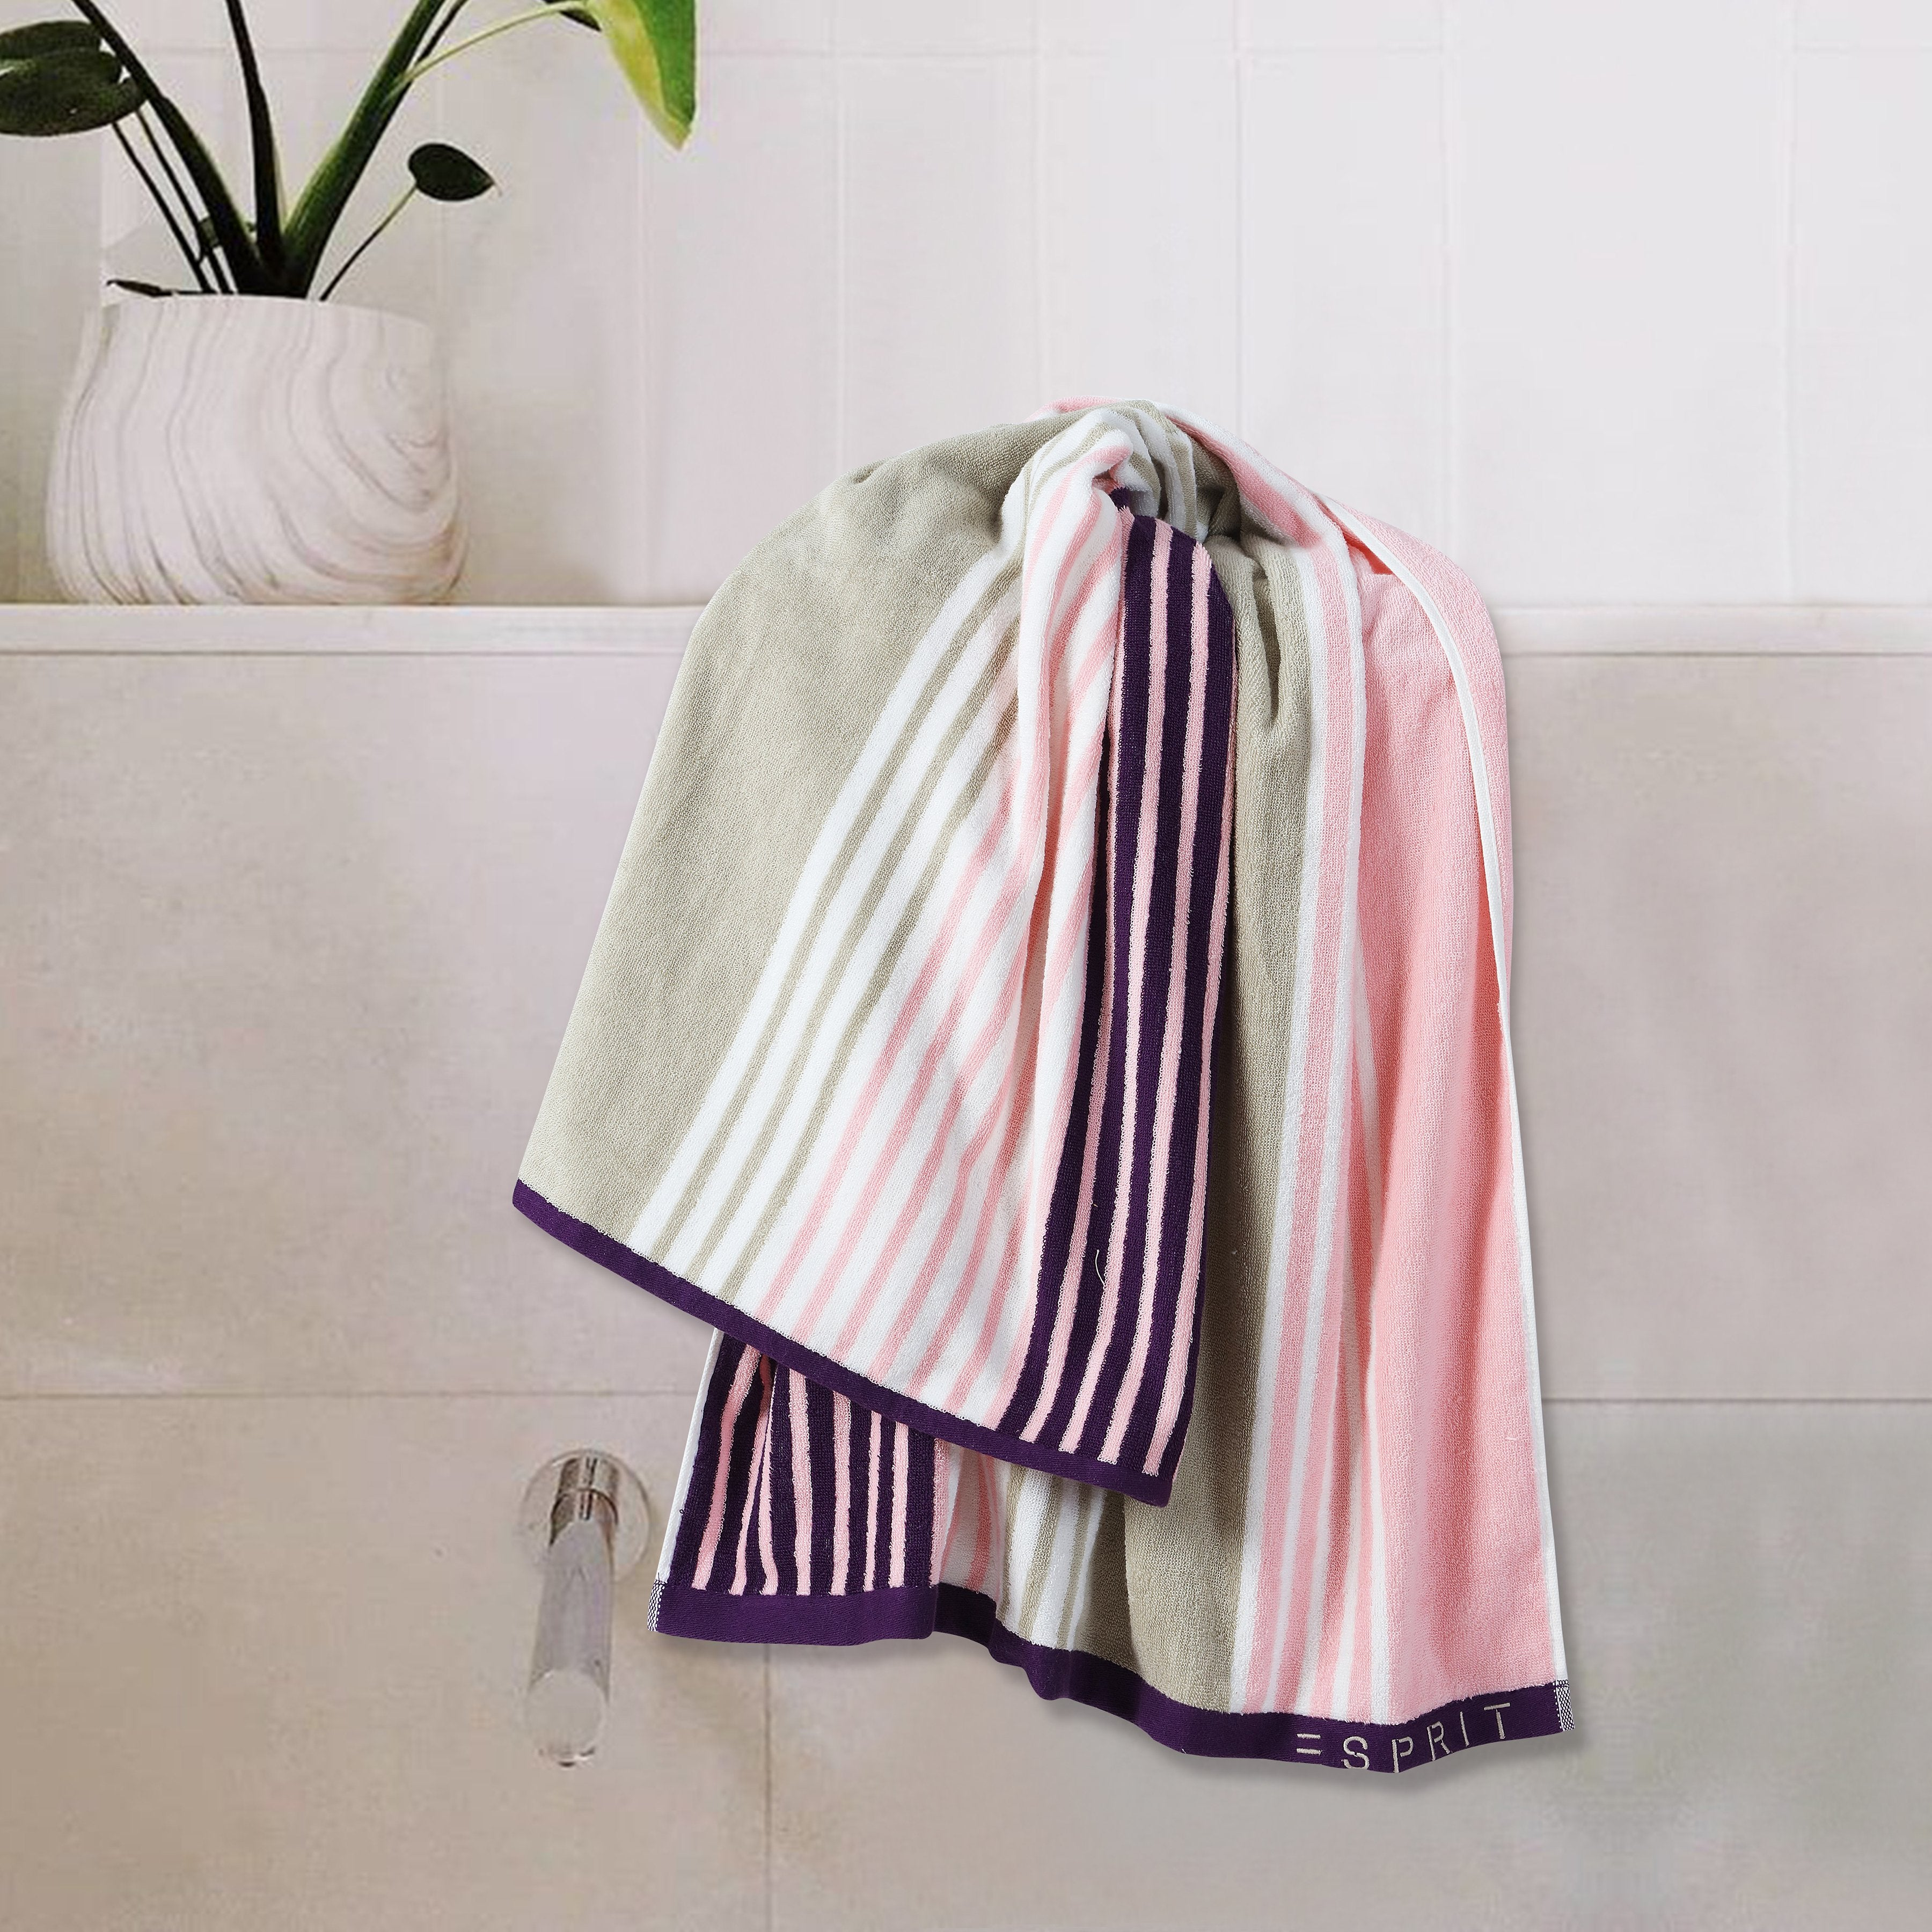 Esprit Towel -  Pink 100% Cotton 480 GSM